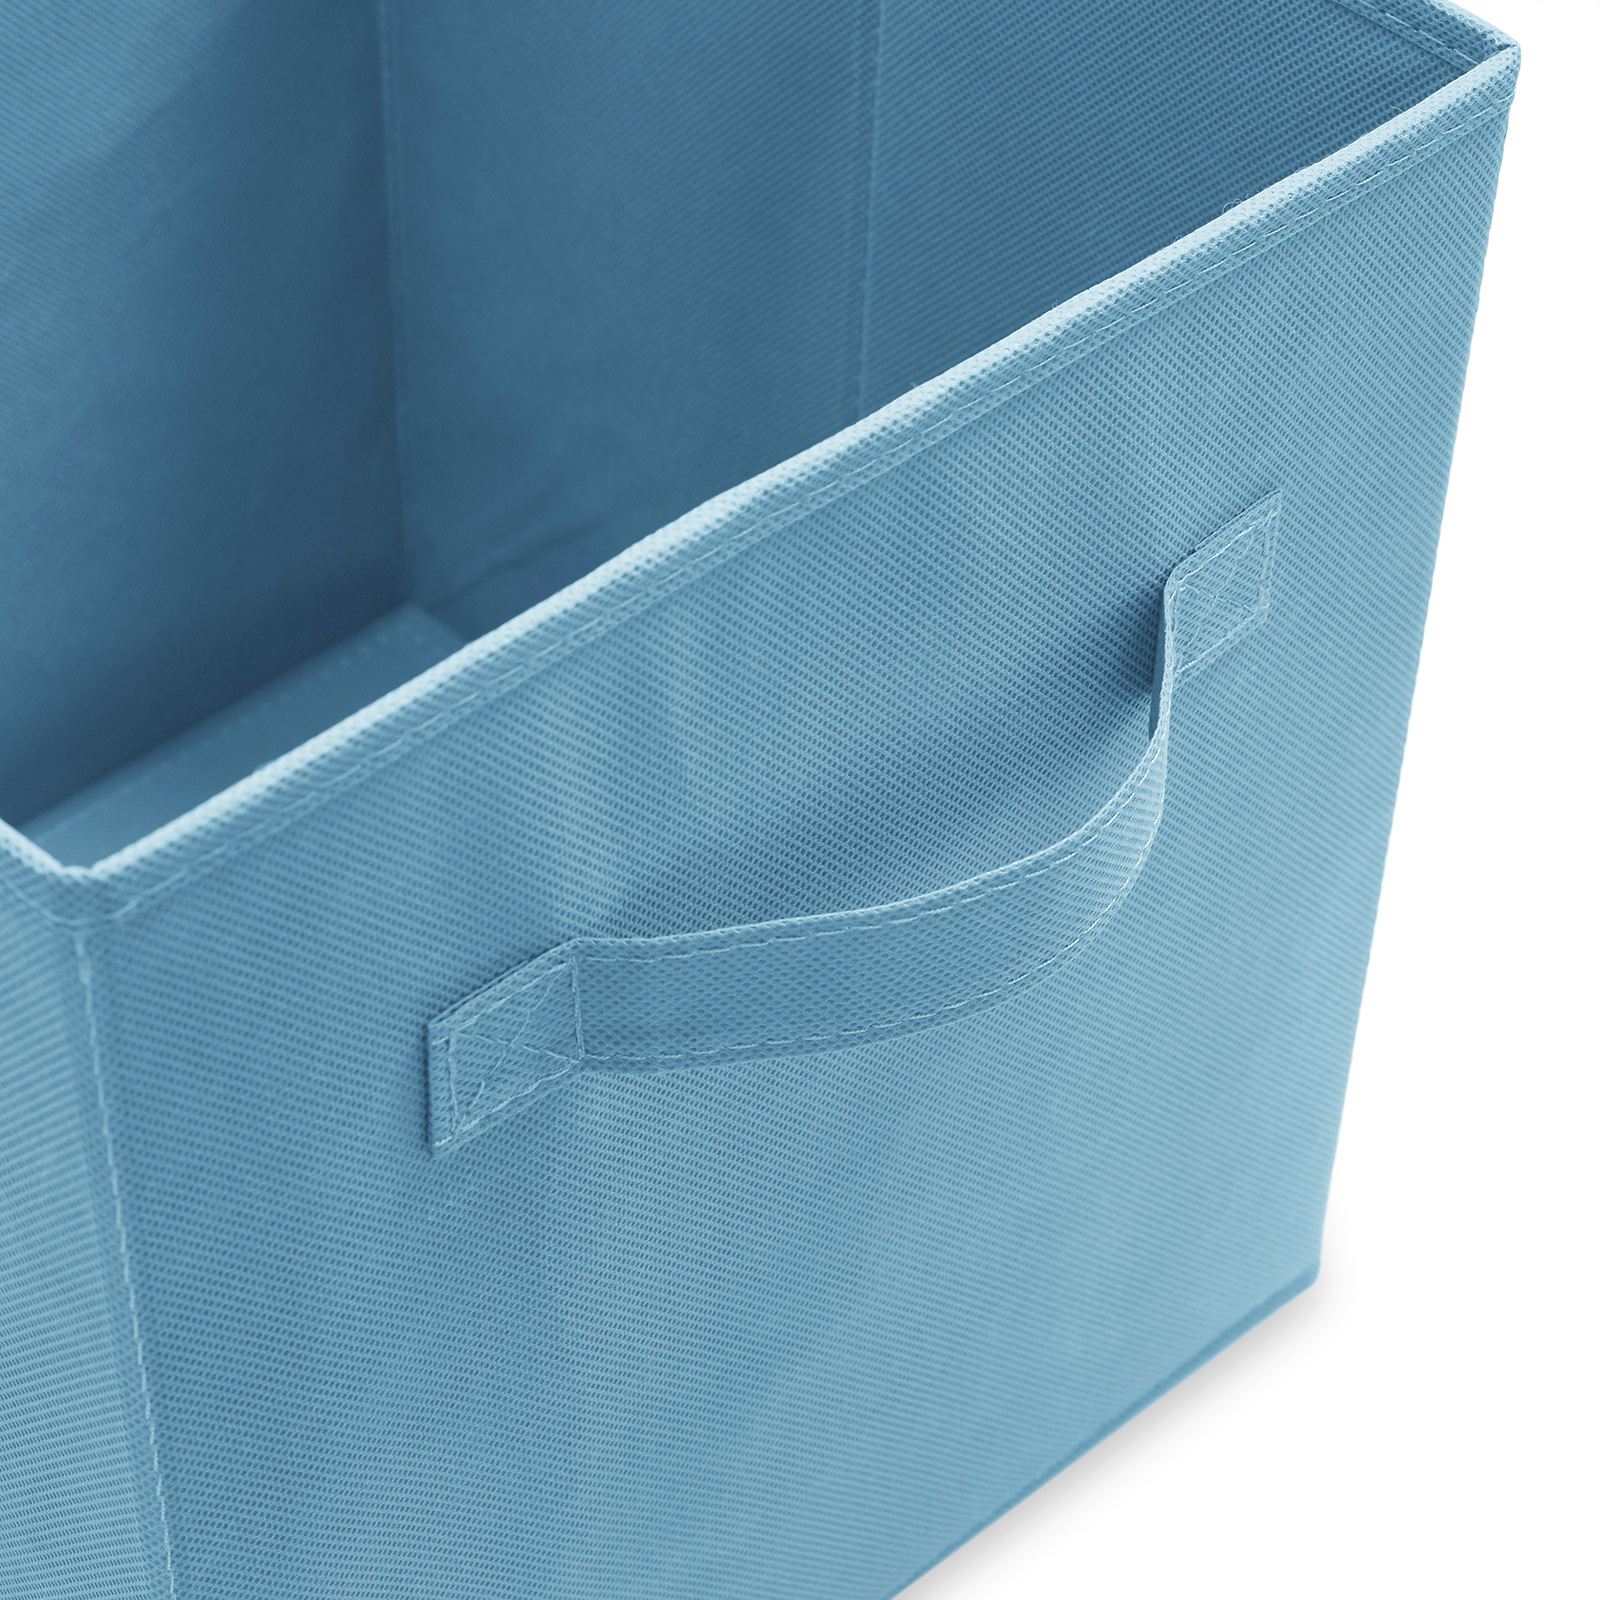 6-Collapsible-Foldable-Cloth-Fabric-Cubby-Cube-Storage-Bins-Baskets-for-Shelves thumbnail 4